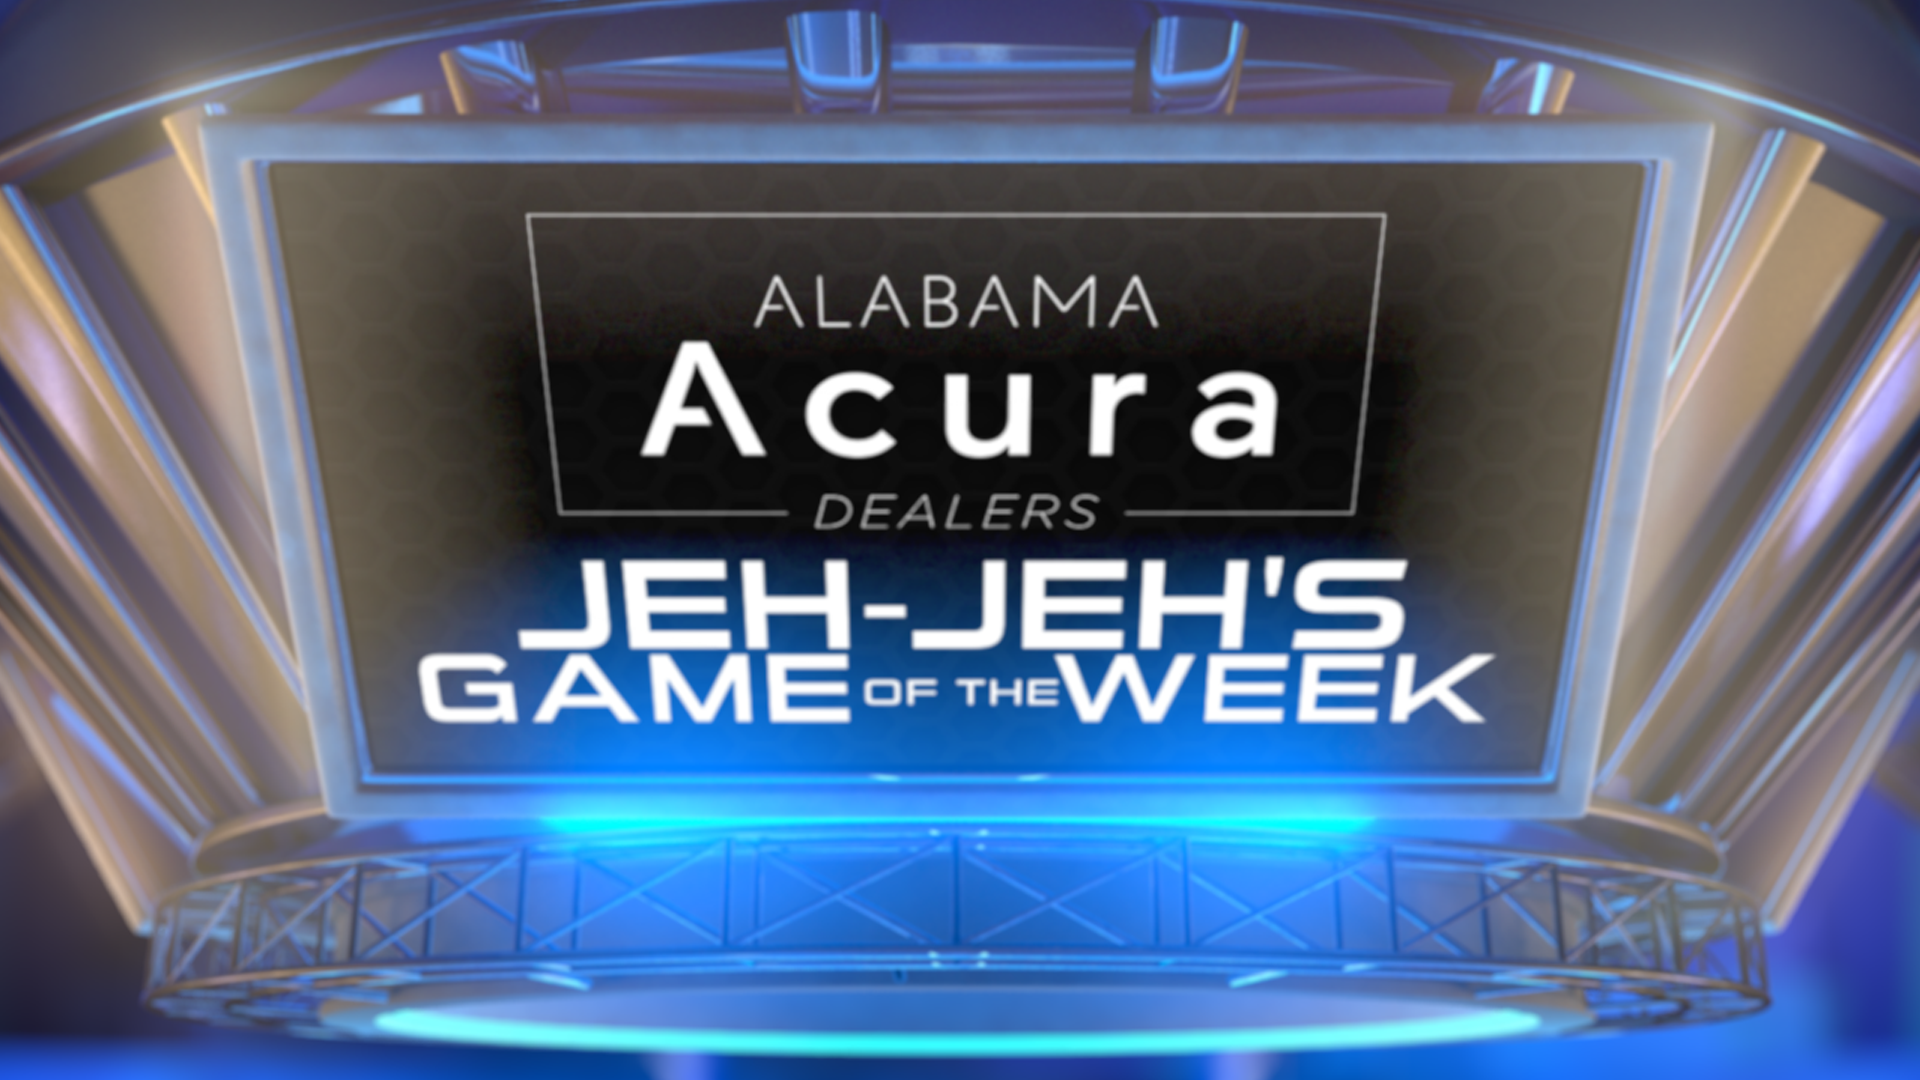 Jeh Jeh's Game of the Week